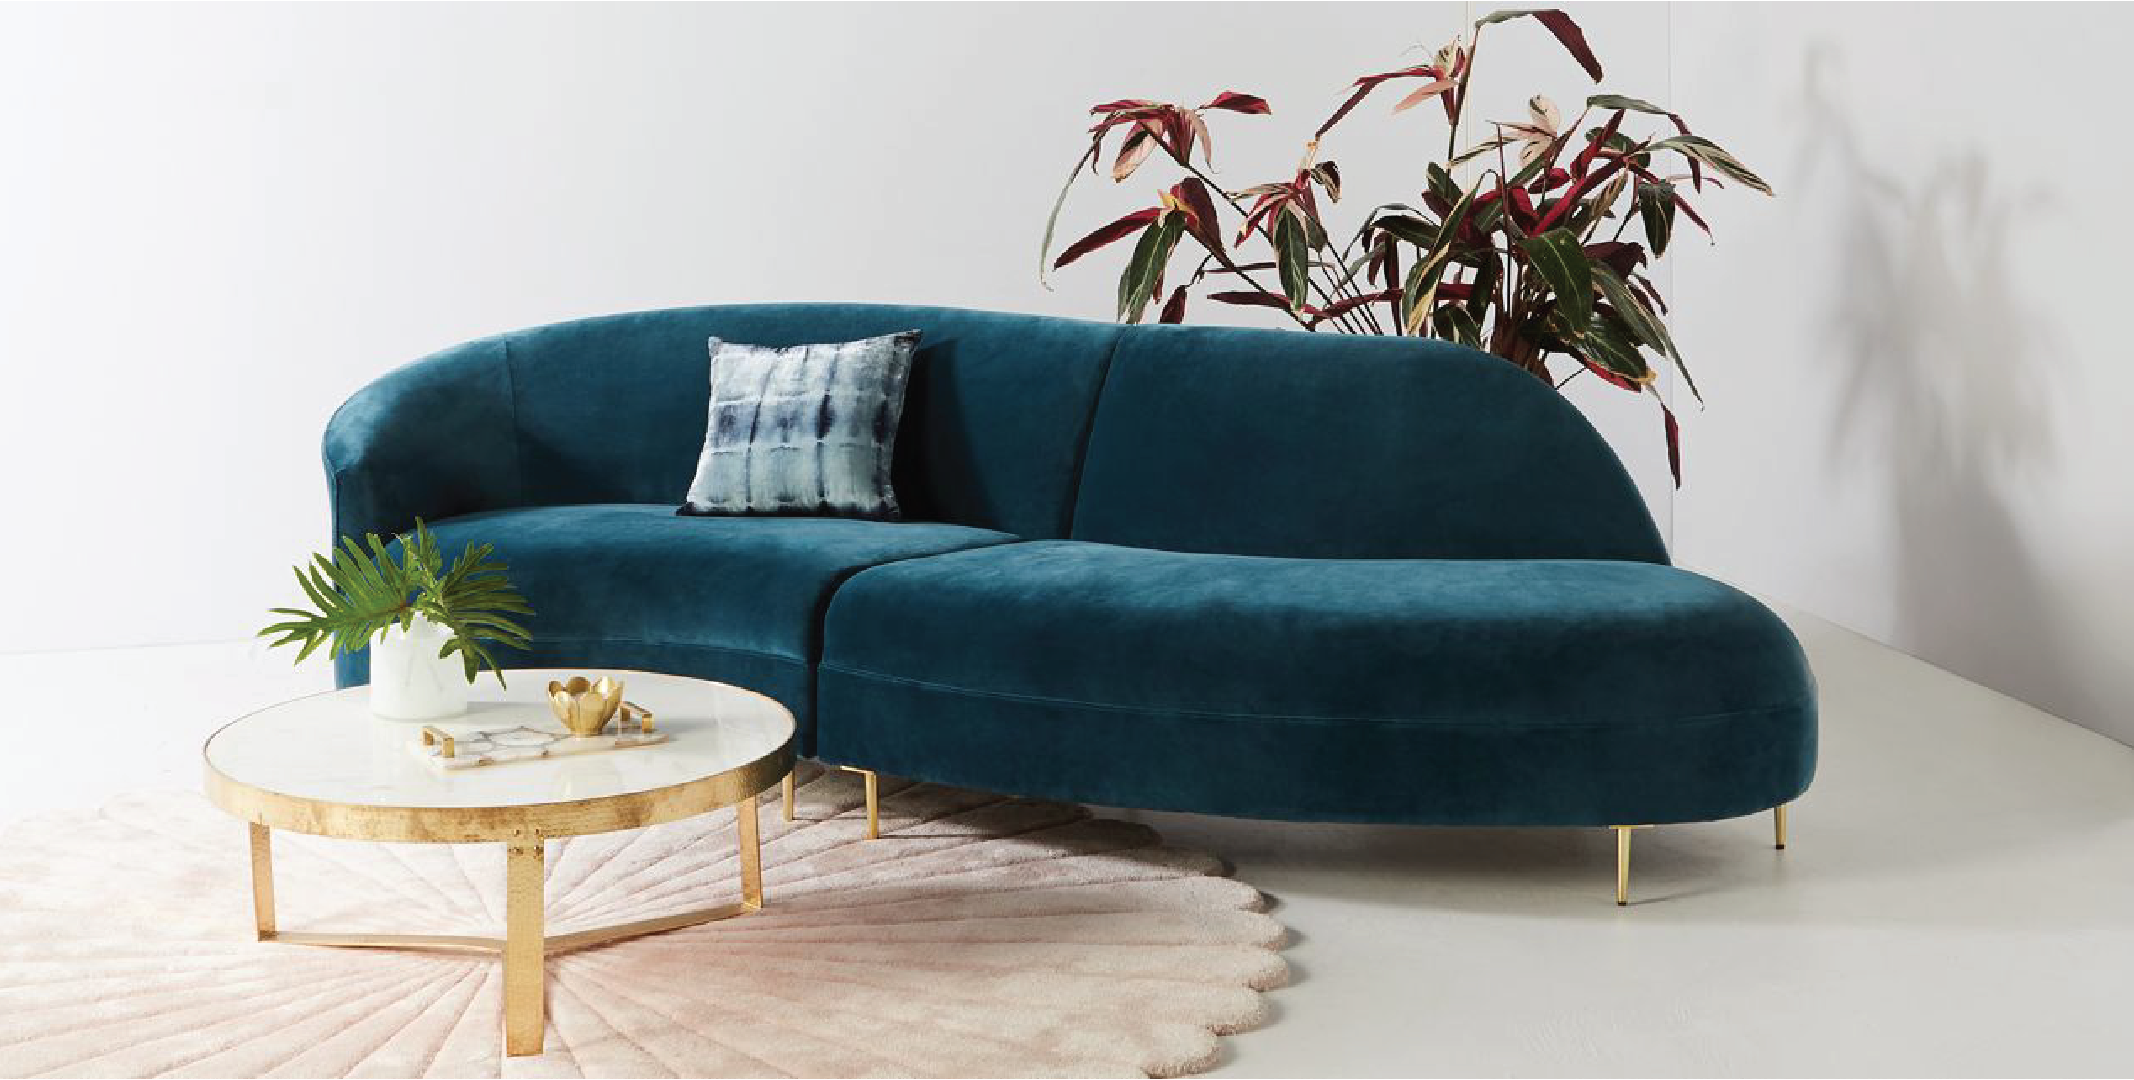 anthropologie, living room inspiration, curved sectional